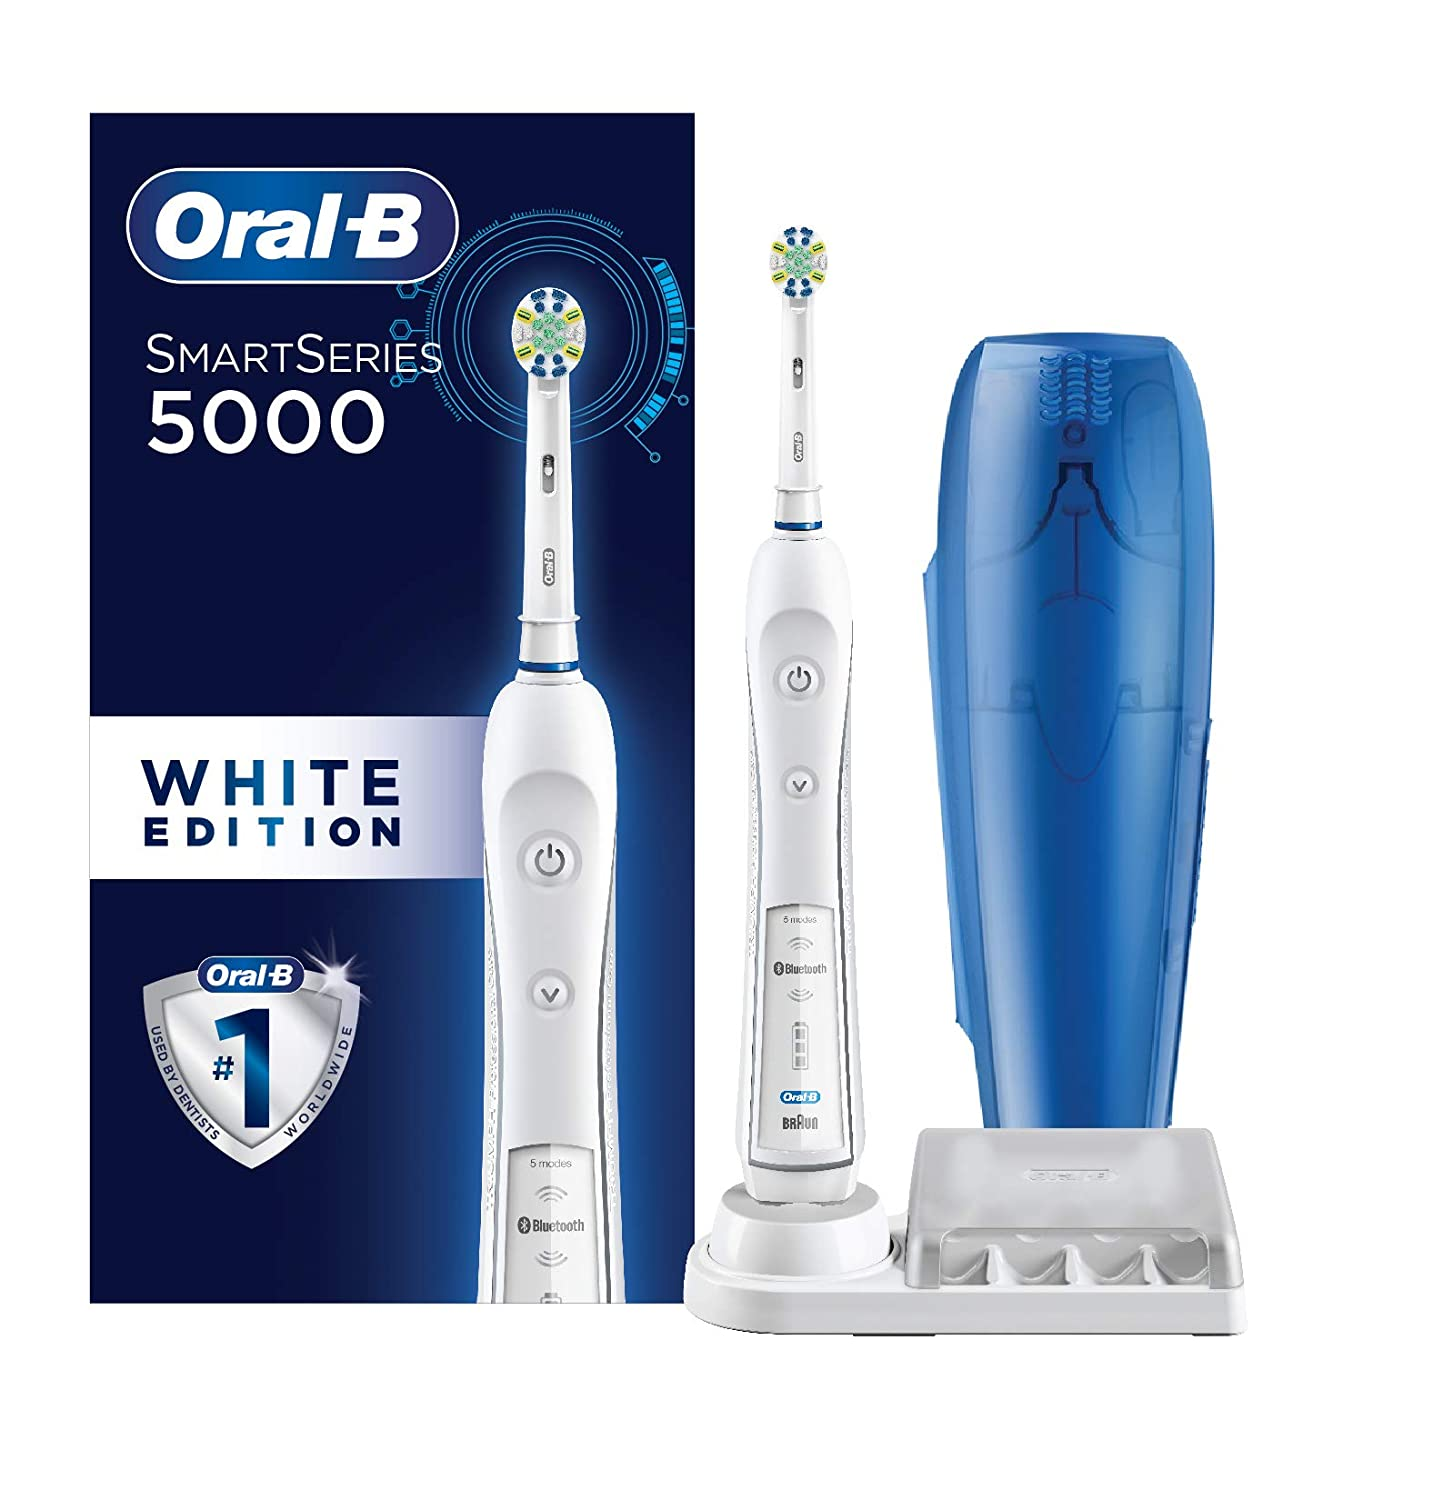 Oral-B Pro 5000 Smartseries Power Rechargeable Electric Toothbrush